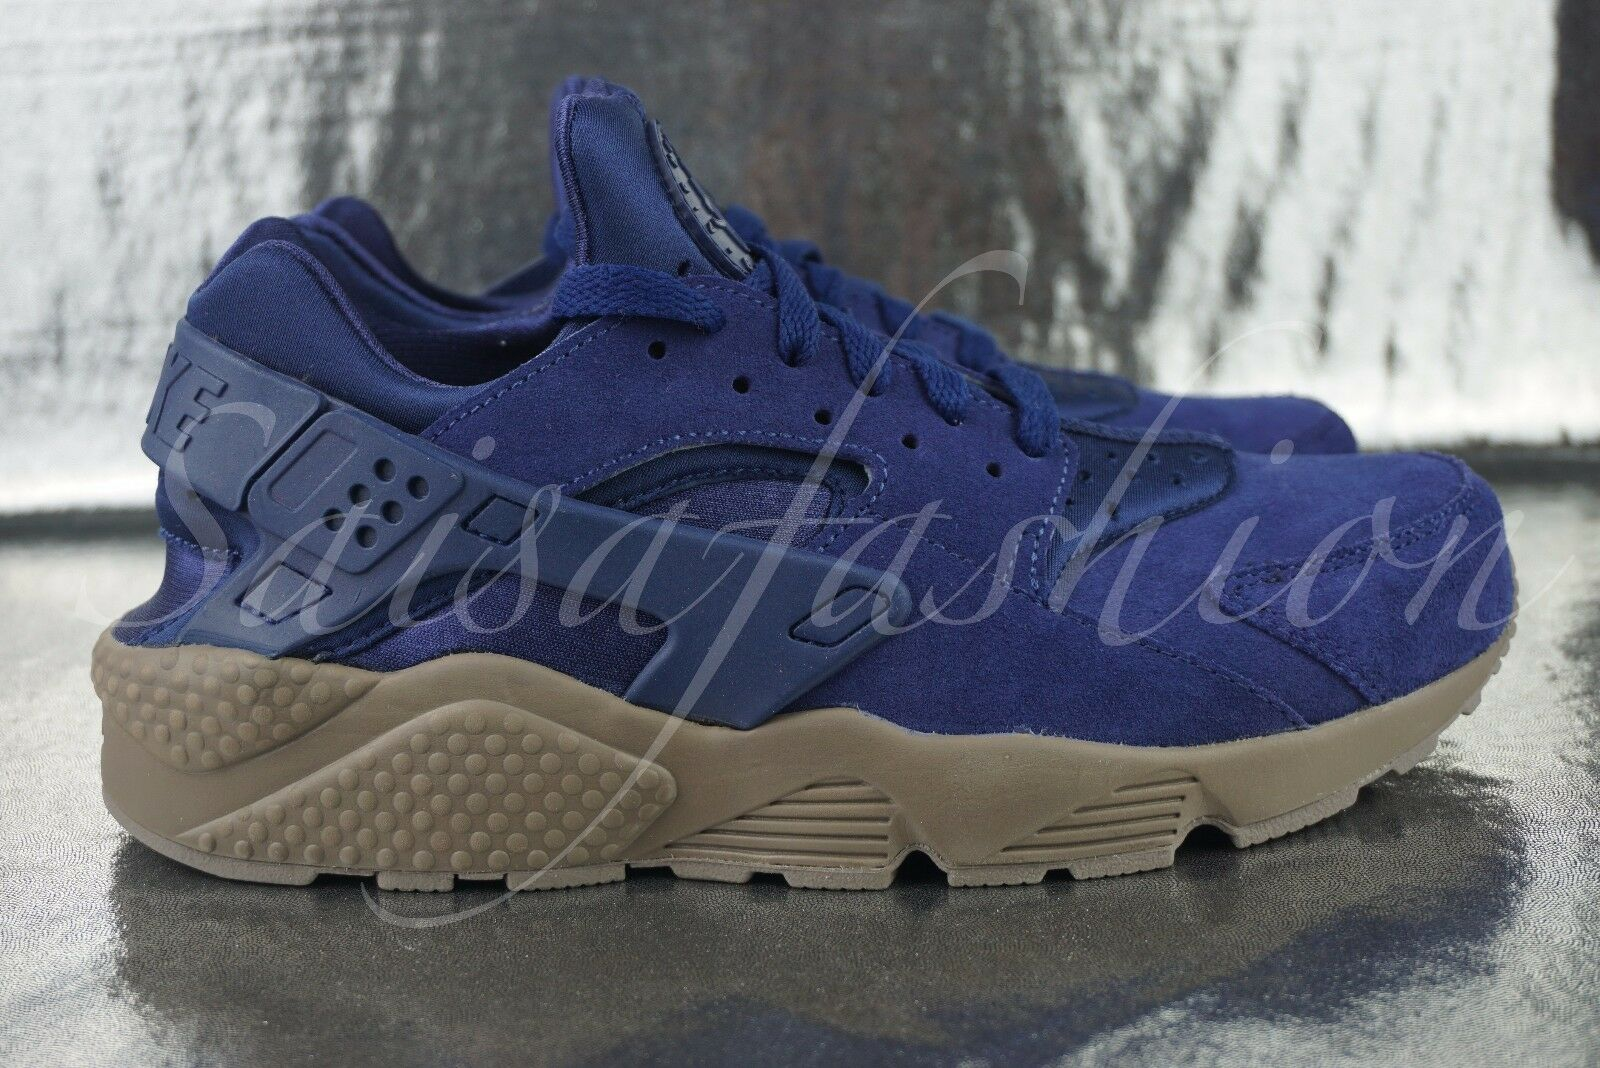 NIKE AIR HUARACHE RUN SE DARK BINARY BLUE SUEDE 852628 400 SZ 9